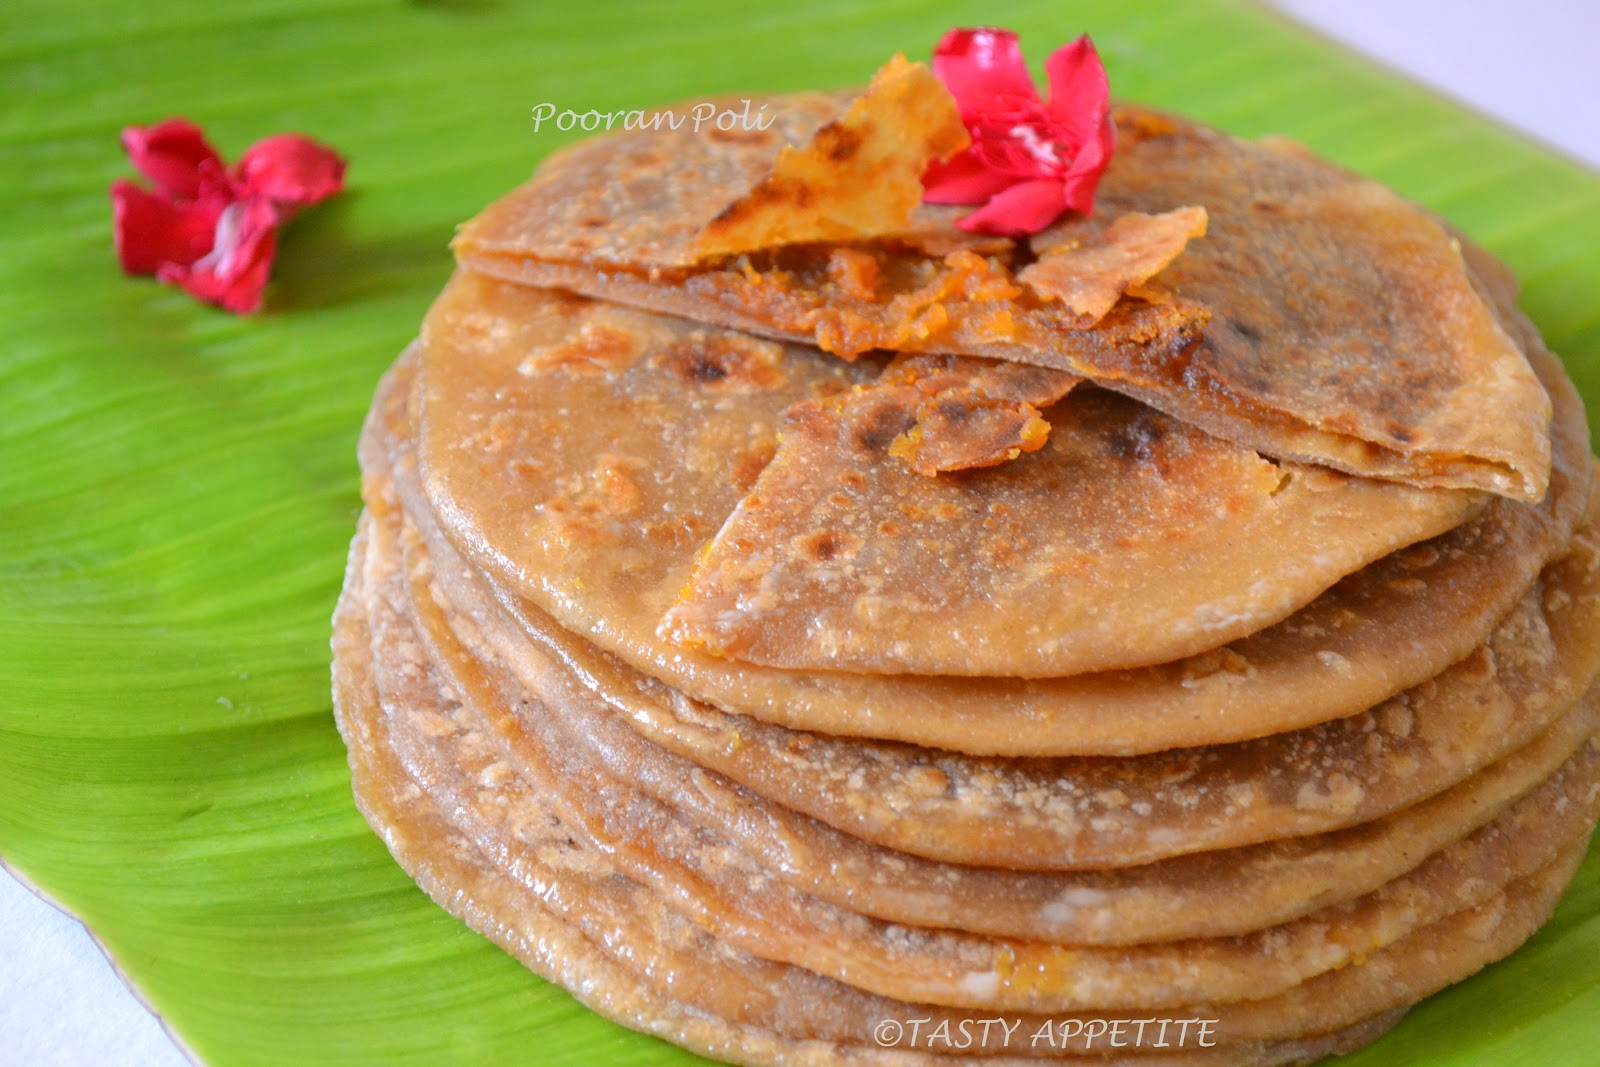 The Lentil Jaggery Stuffing Is Known As Puran And The Roti Covering Is Called Poli Puran Poli It Makes A Healthy Breakfast Dish Or Served As A Snack